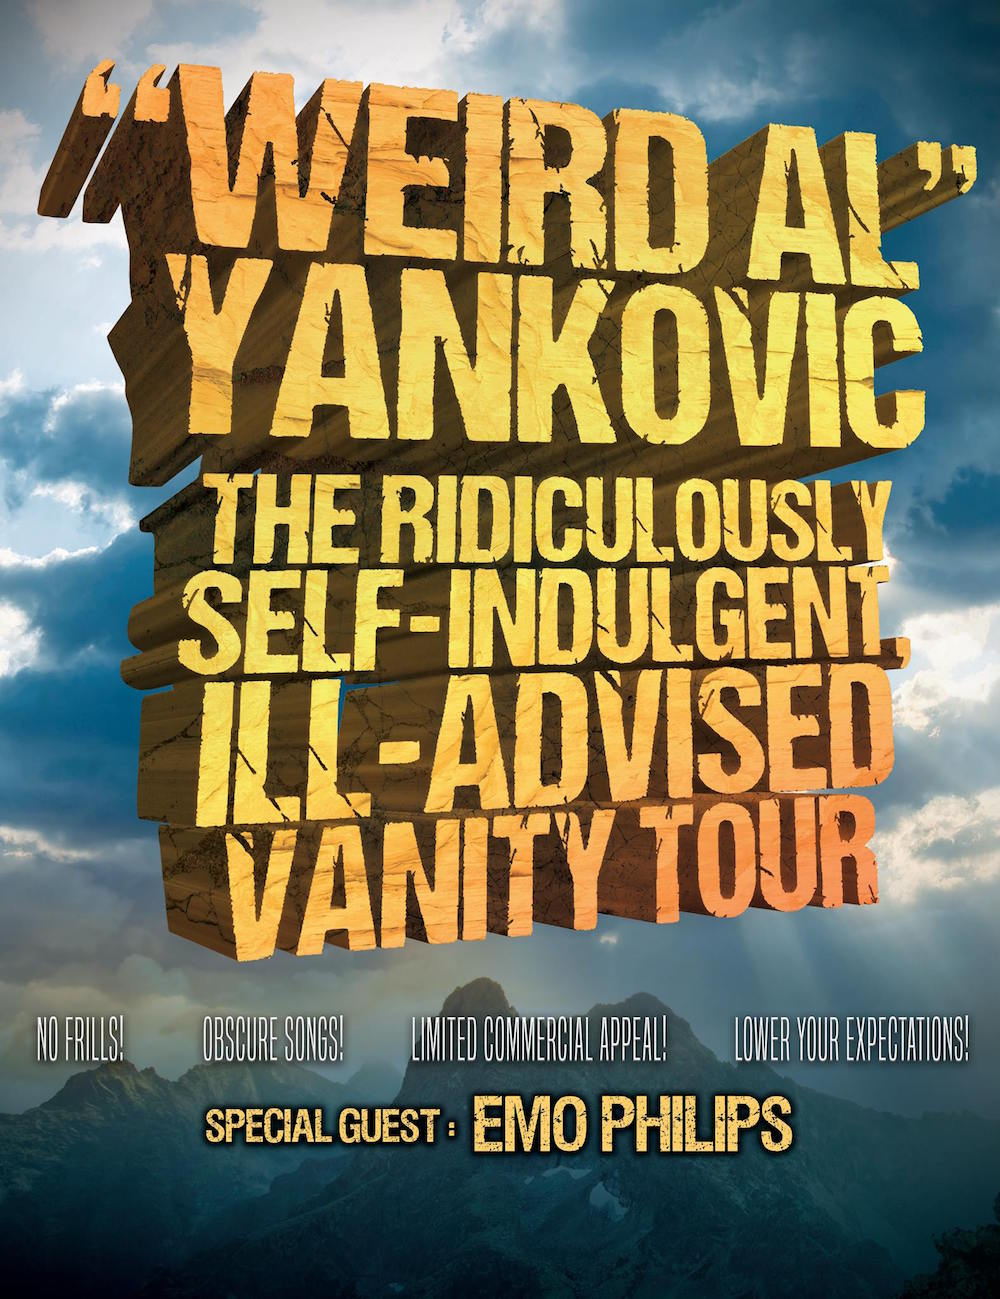 22382377 10155536575906005 5239119970592500997 o Weird Al Yankovic announces The Ridiculously Self Indulgent Ill Advised Vanity Tour